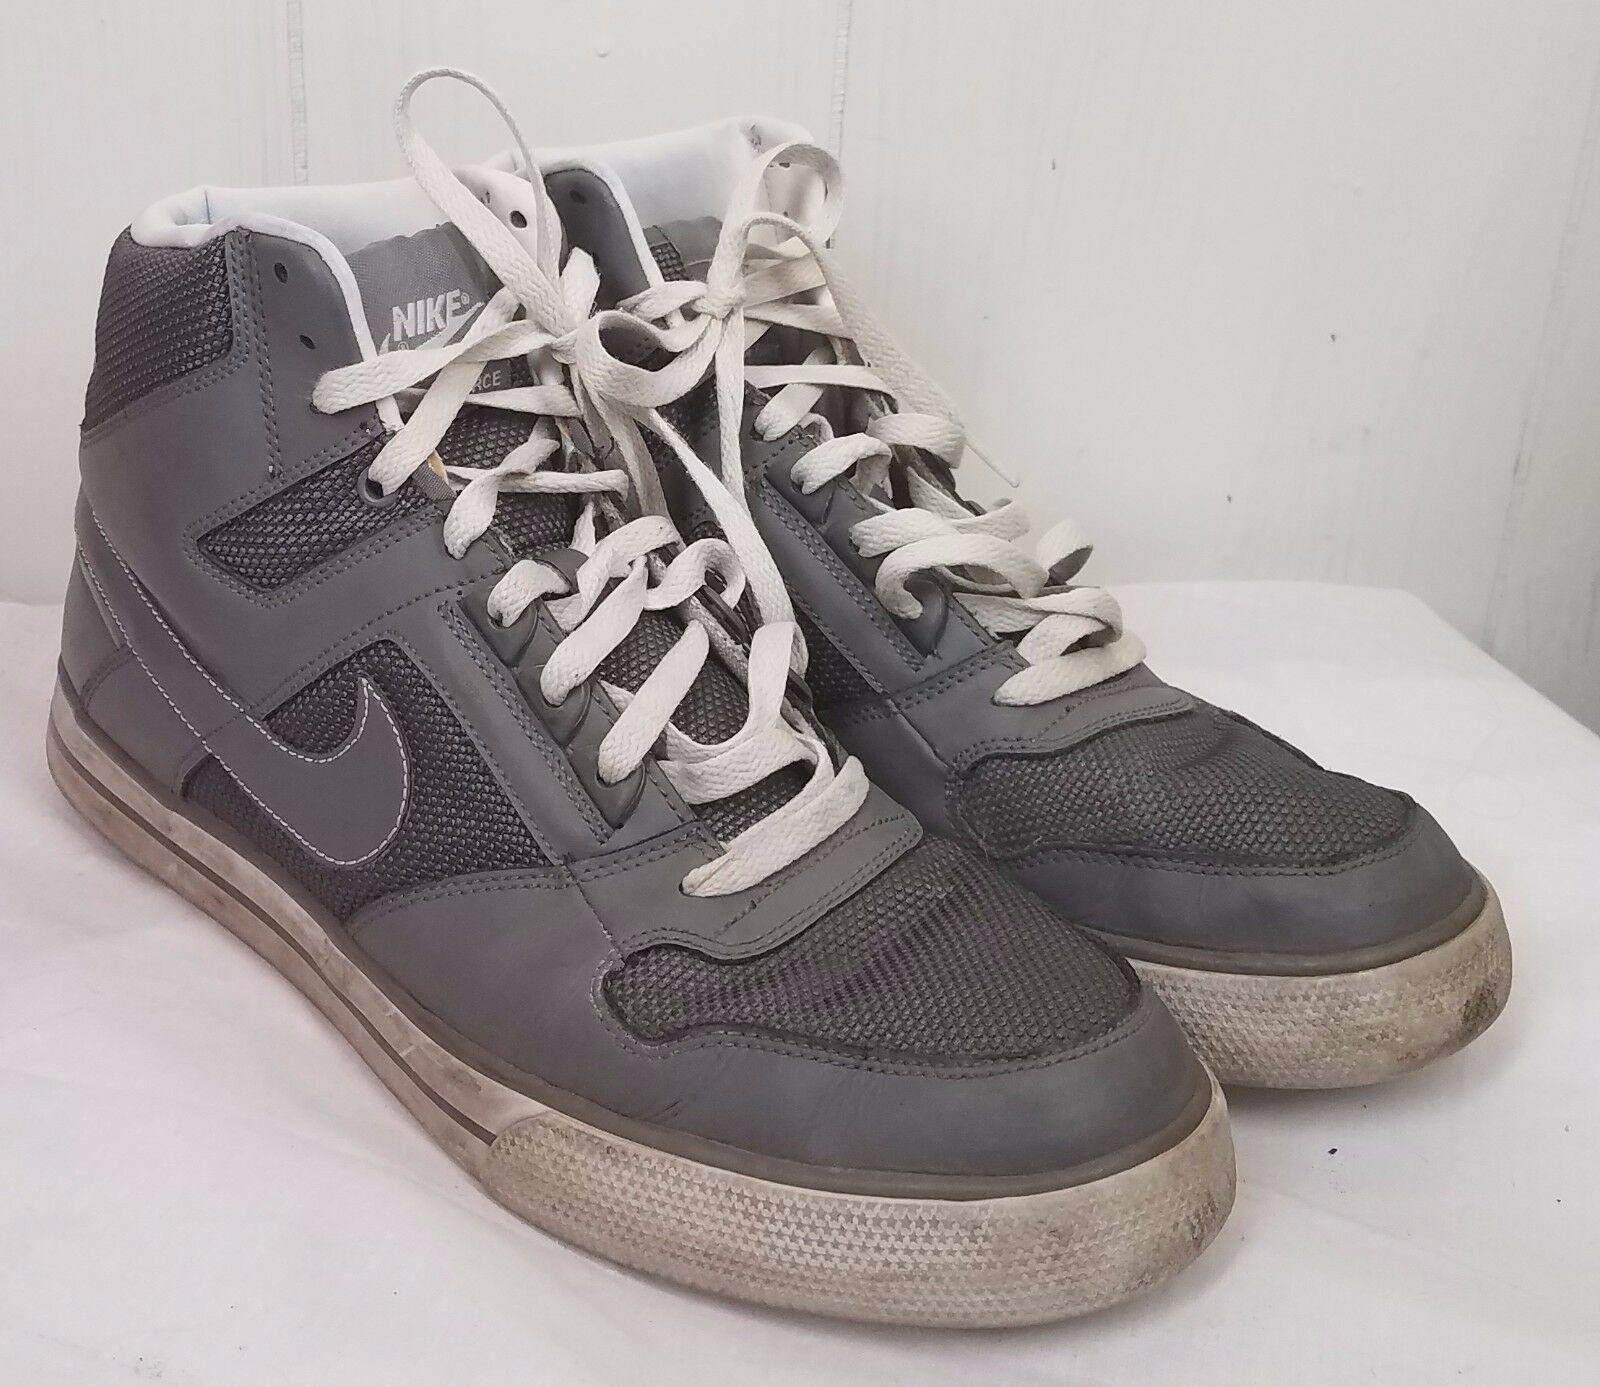 Nike Delta Force High AC Mens gray sneakers tennis Shoes size 12